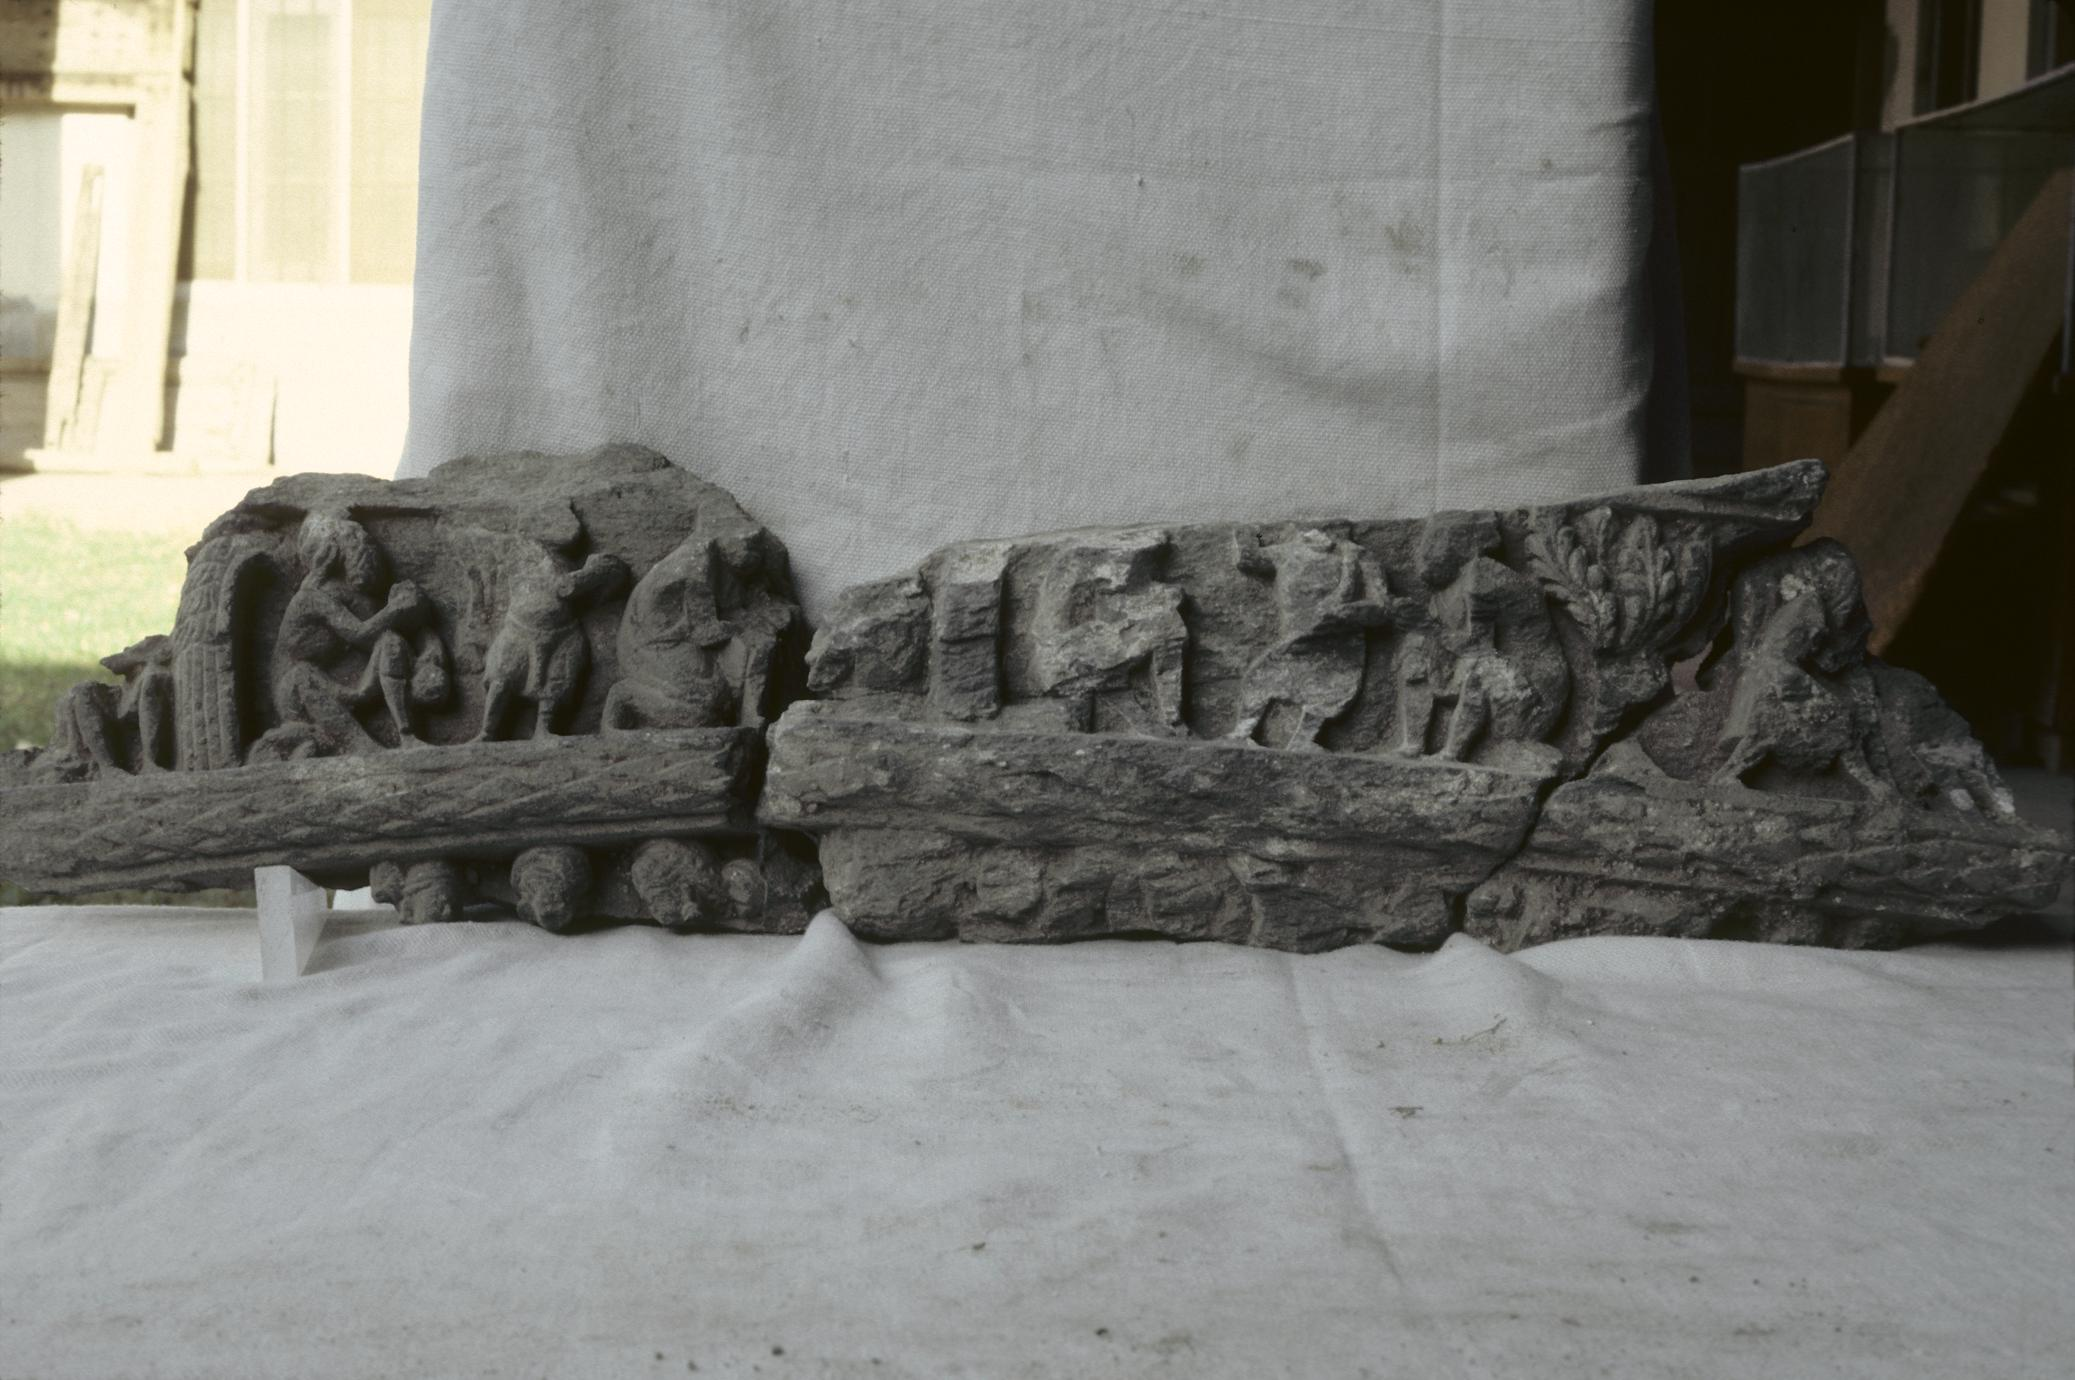 NG336, Figured Relief (1 of 3)